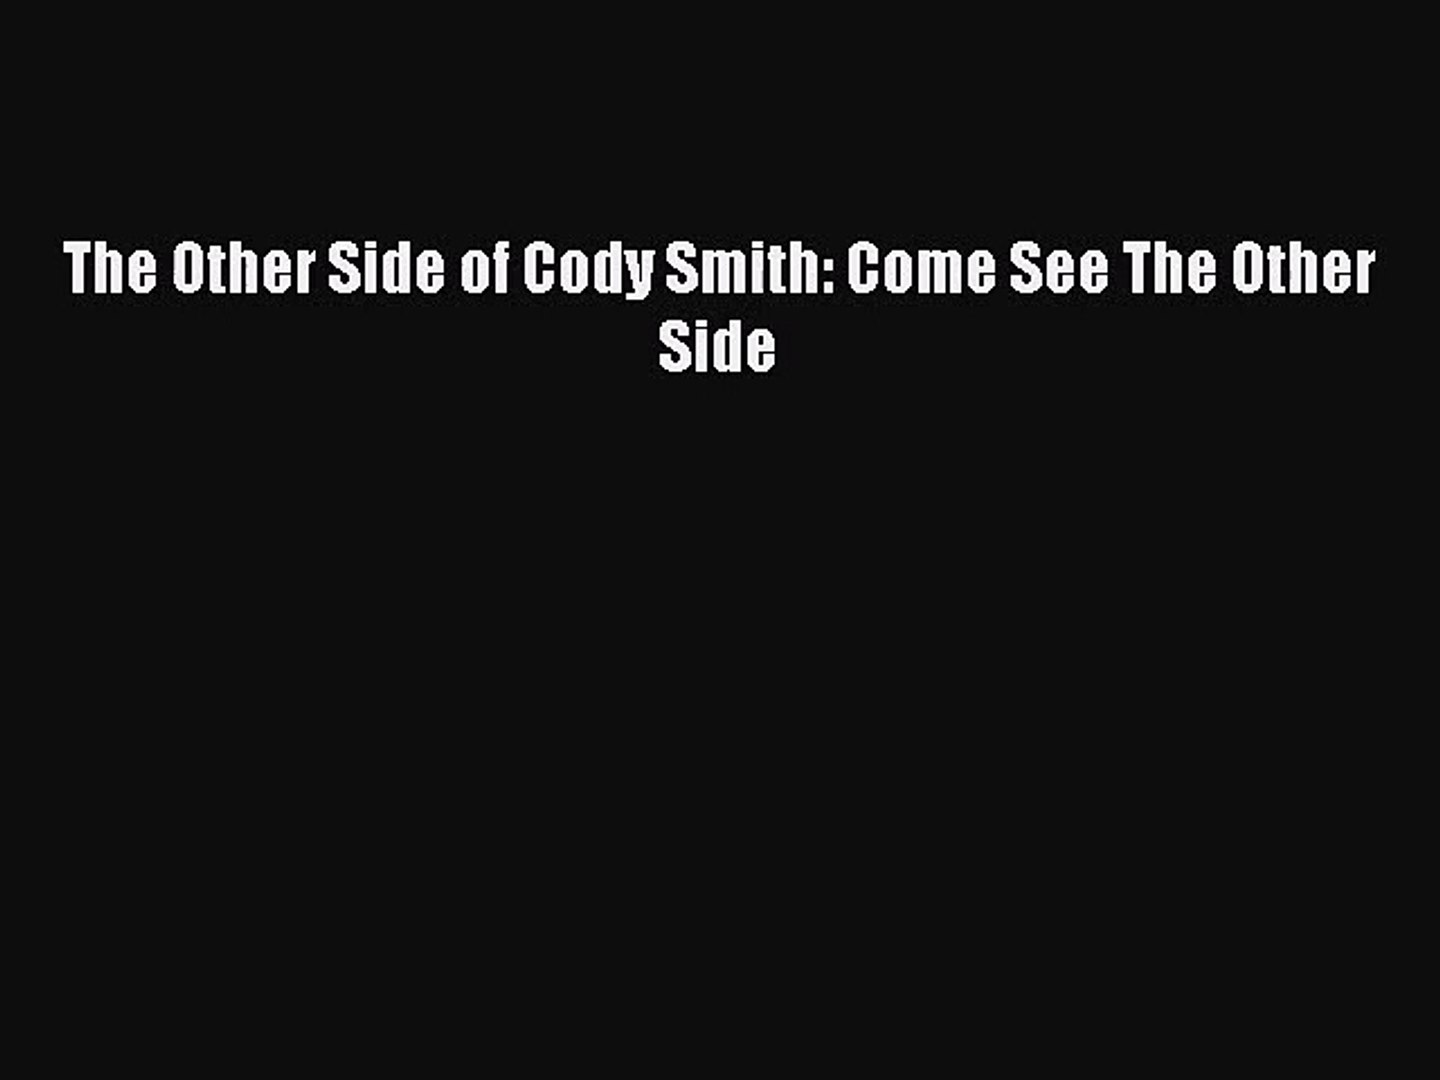 The Other Side of Cody Smith: Come See The Other Side [Read] Online